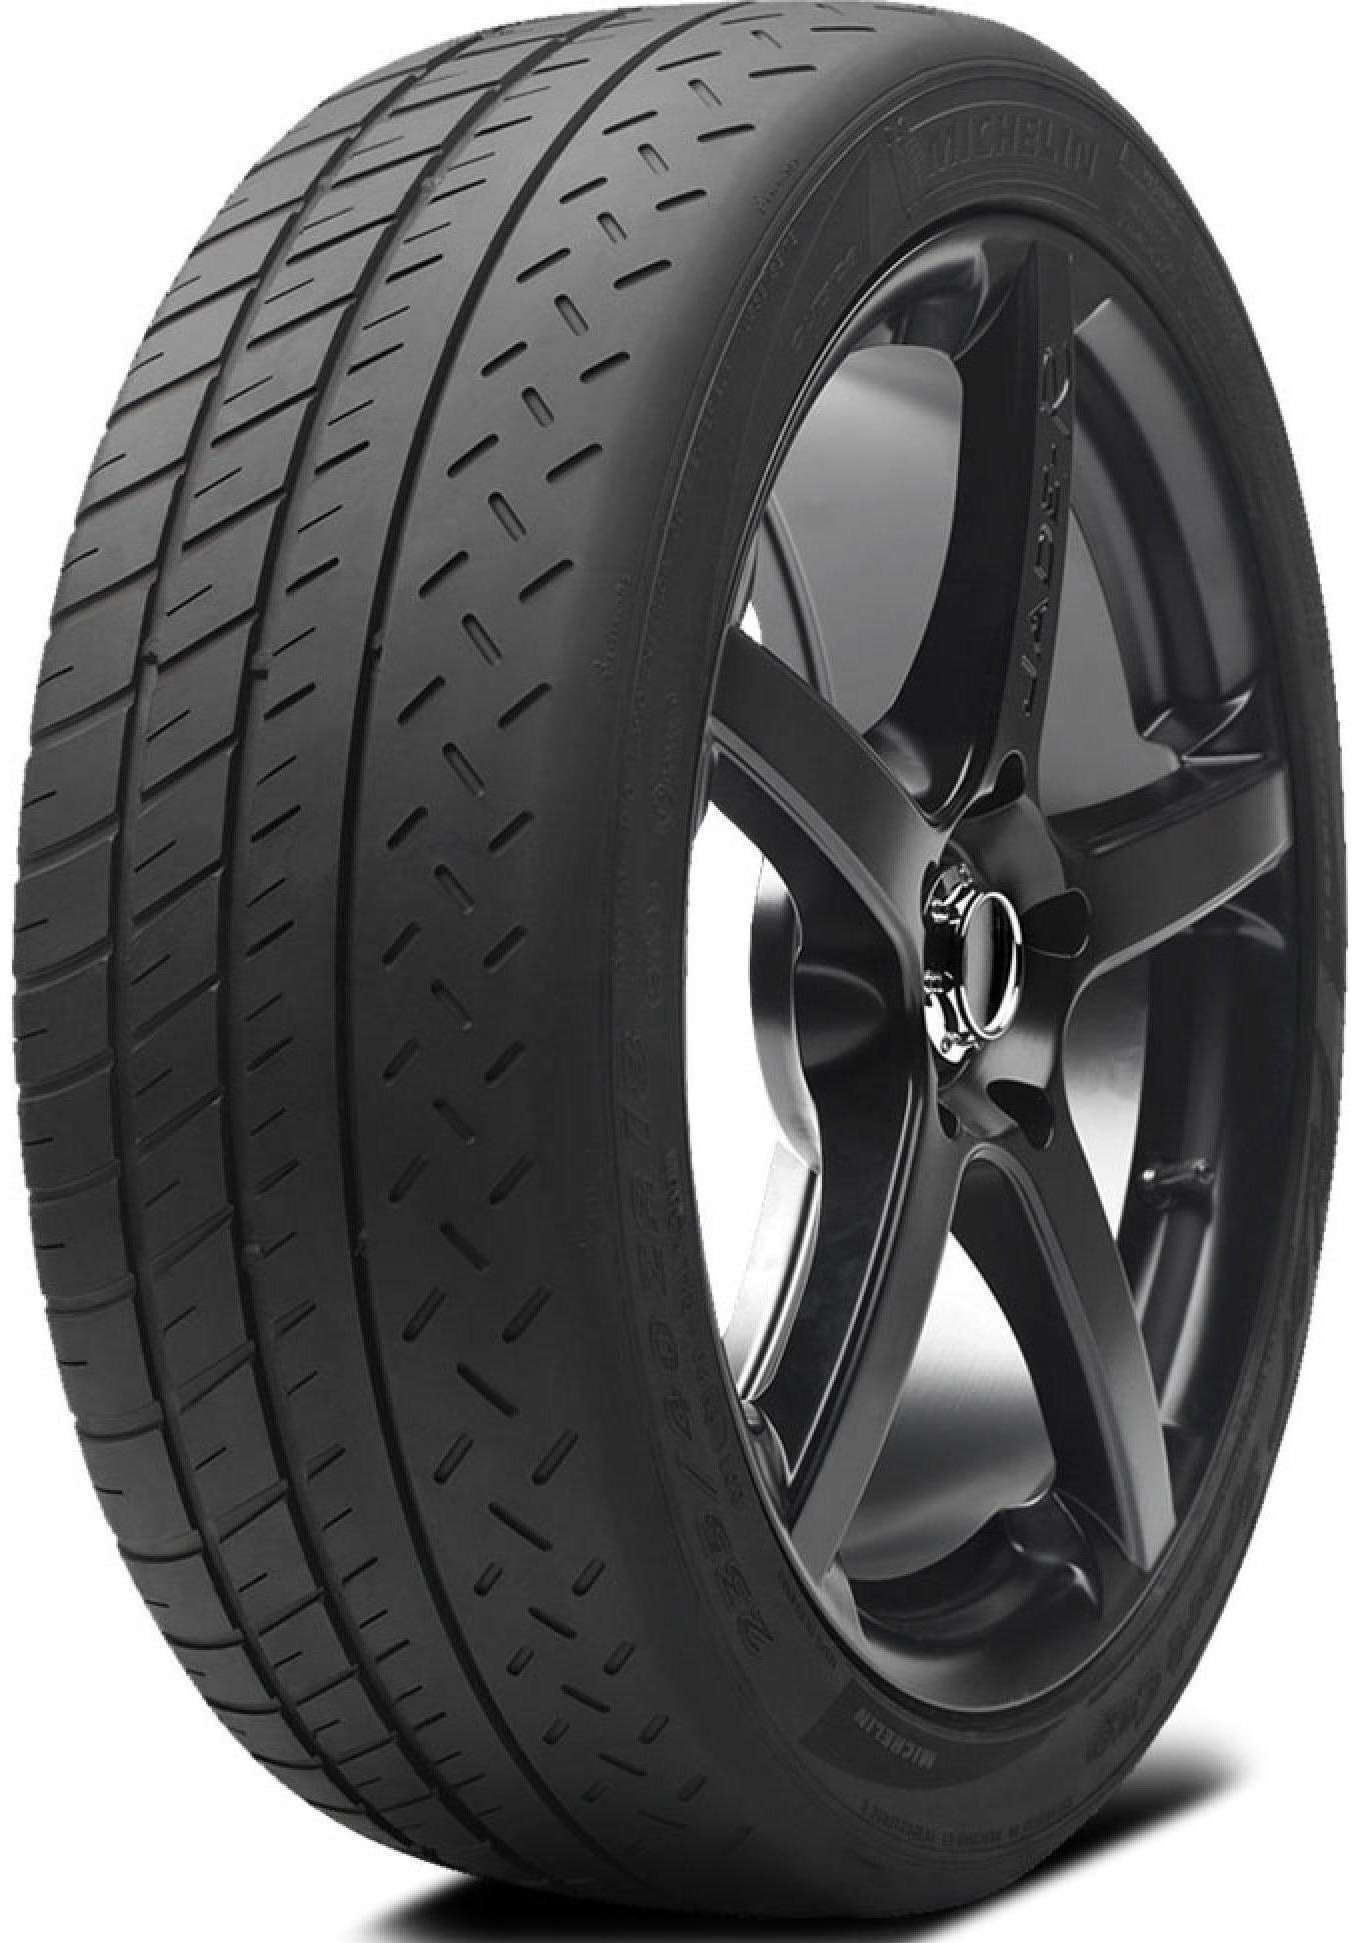 MICHELIN PILOT SPORT CUP  245 35 R 19 93Y